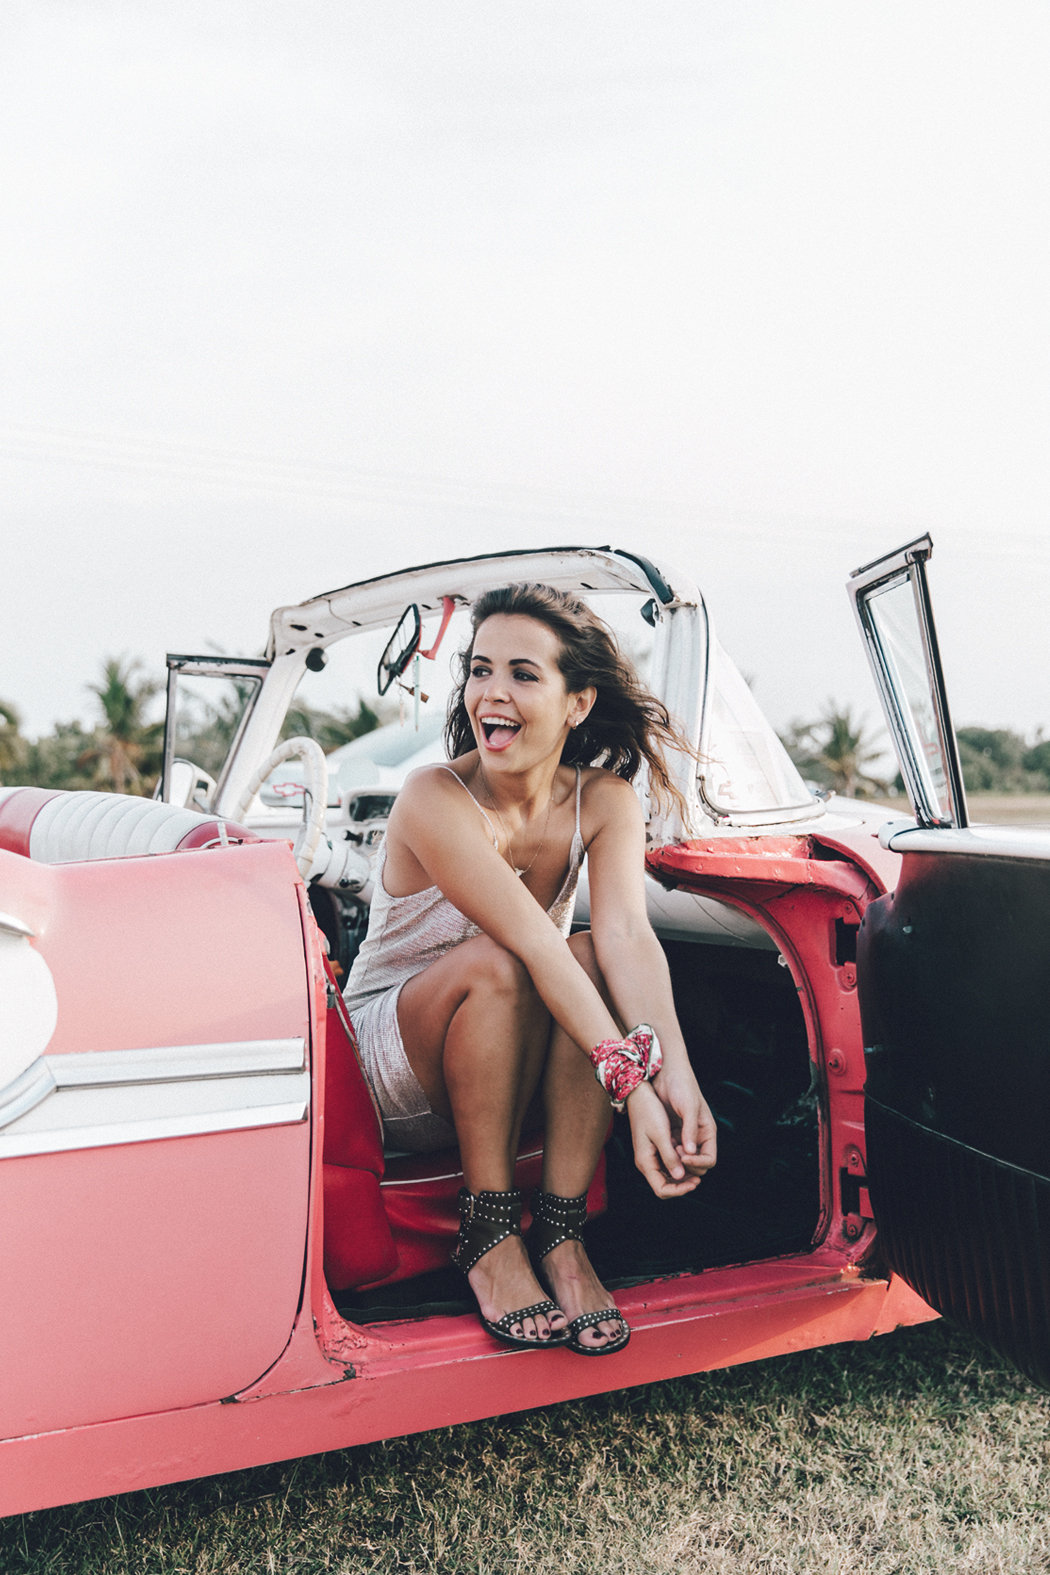 Cuba-Varadero-Vintage_Car-Silver_Dress-Floral_Scarf-Isabel_Marant_Sandals-Outfit-COllage_On_The_Road-44